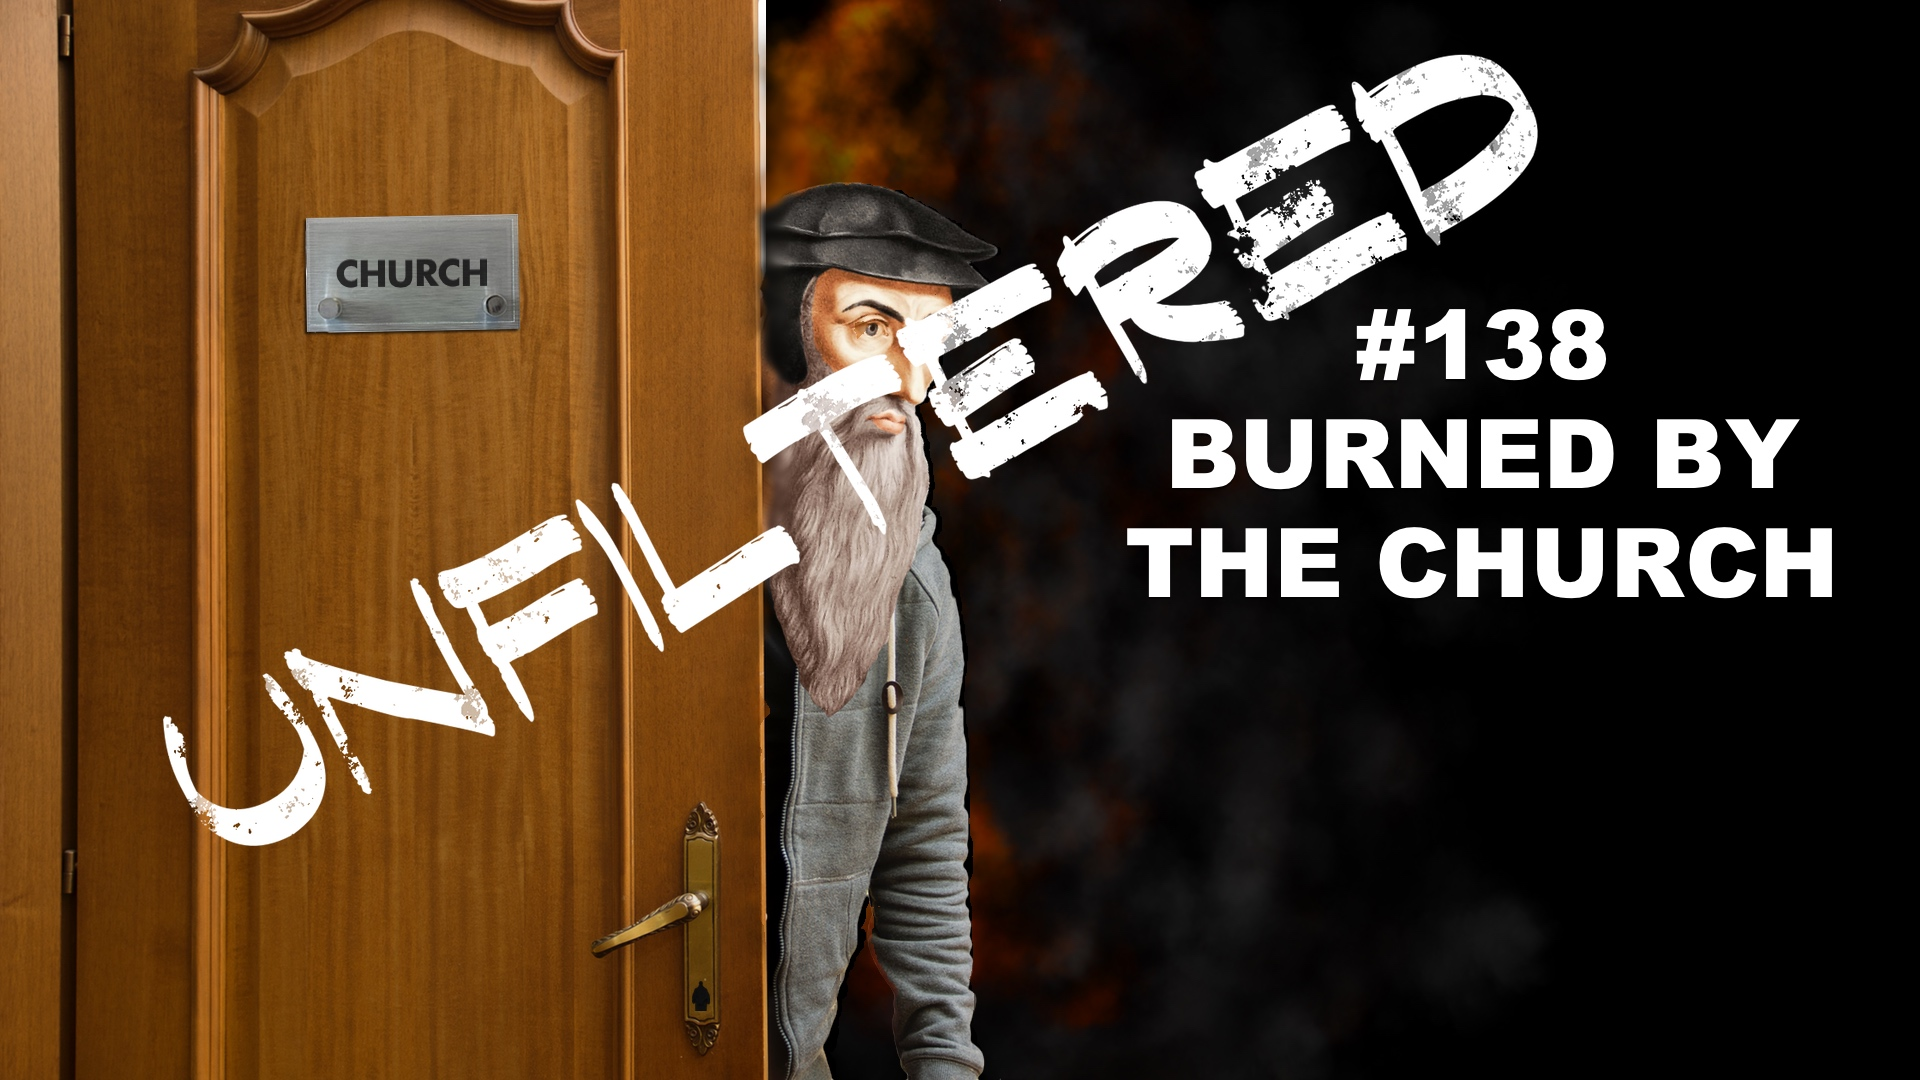 #138 Burned By The Church